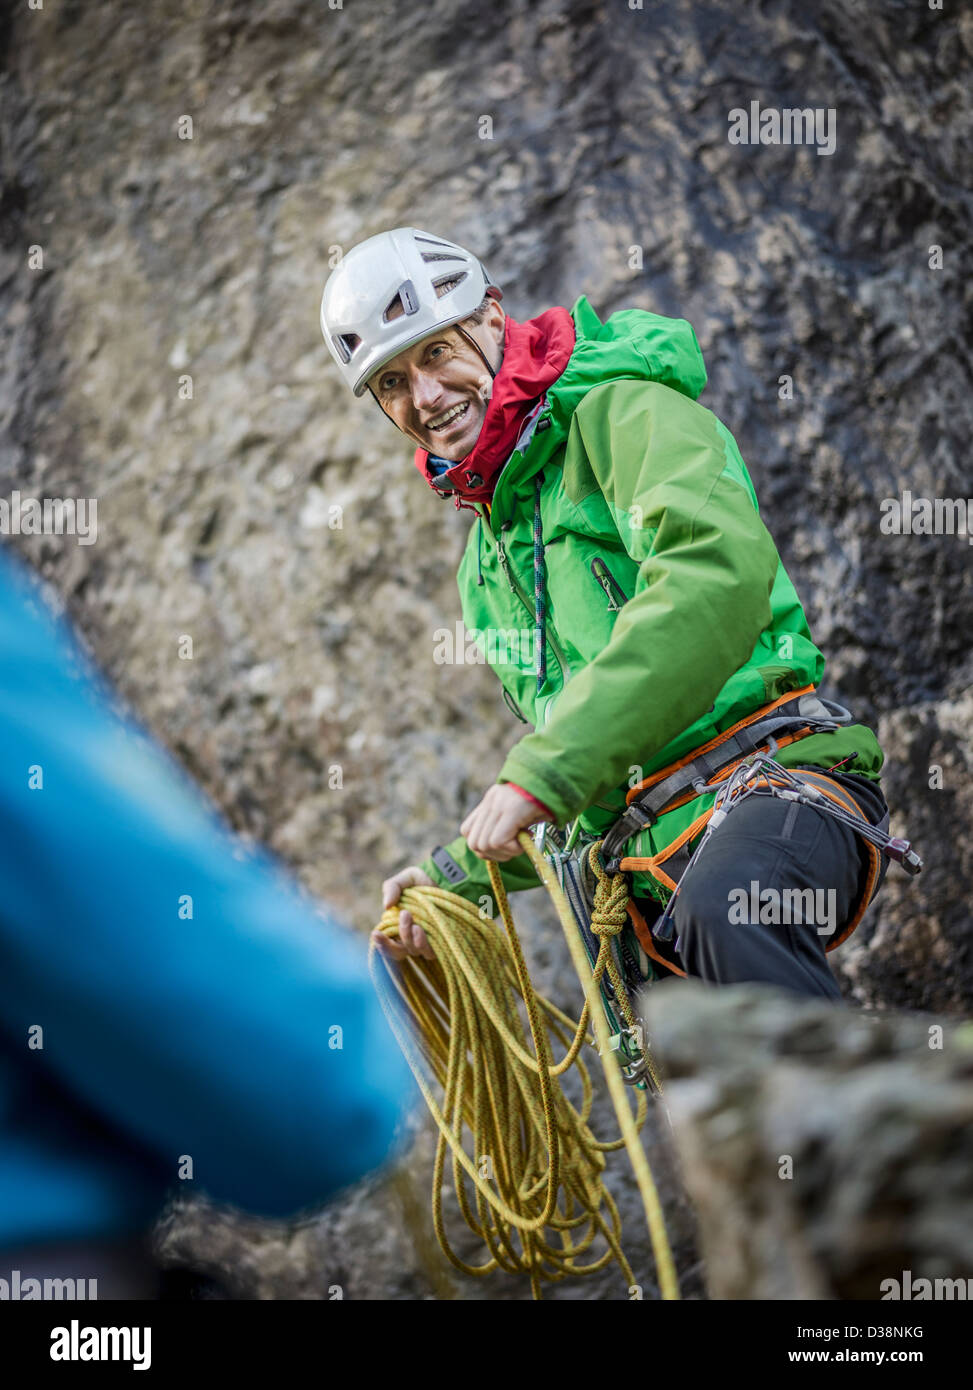 Rock climber pulling up rope - Stock Image